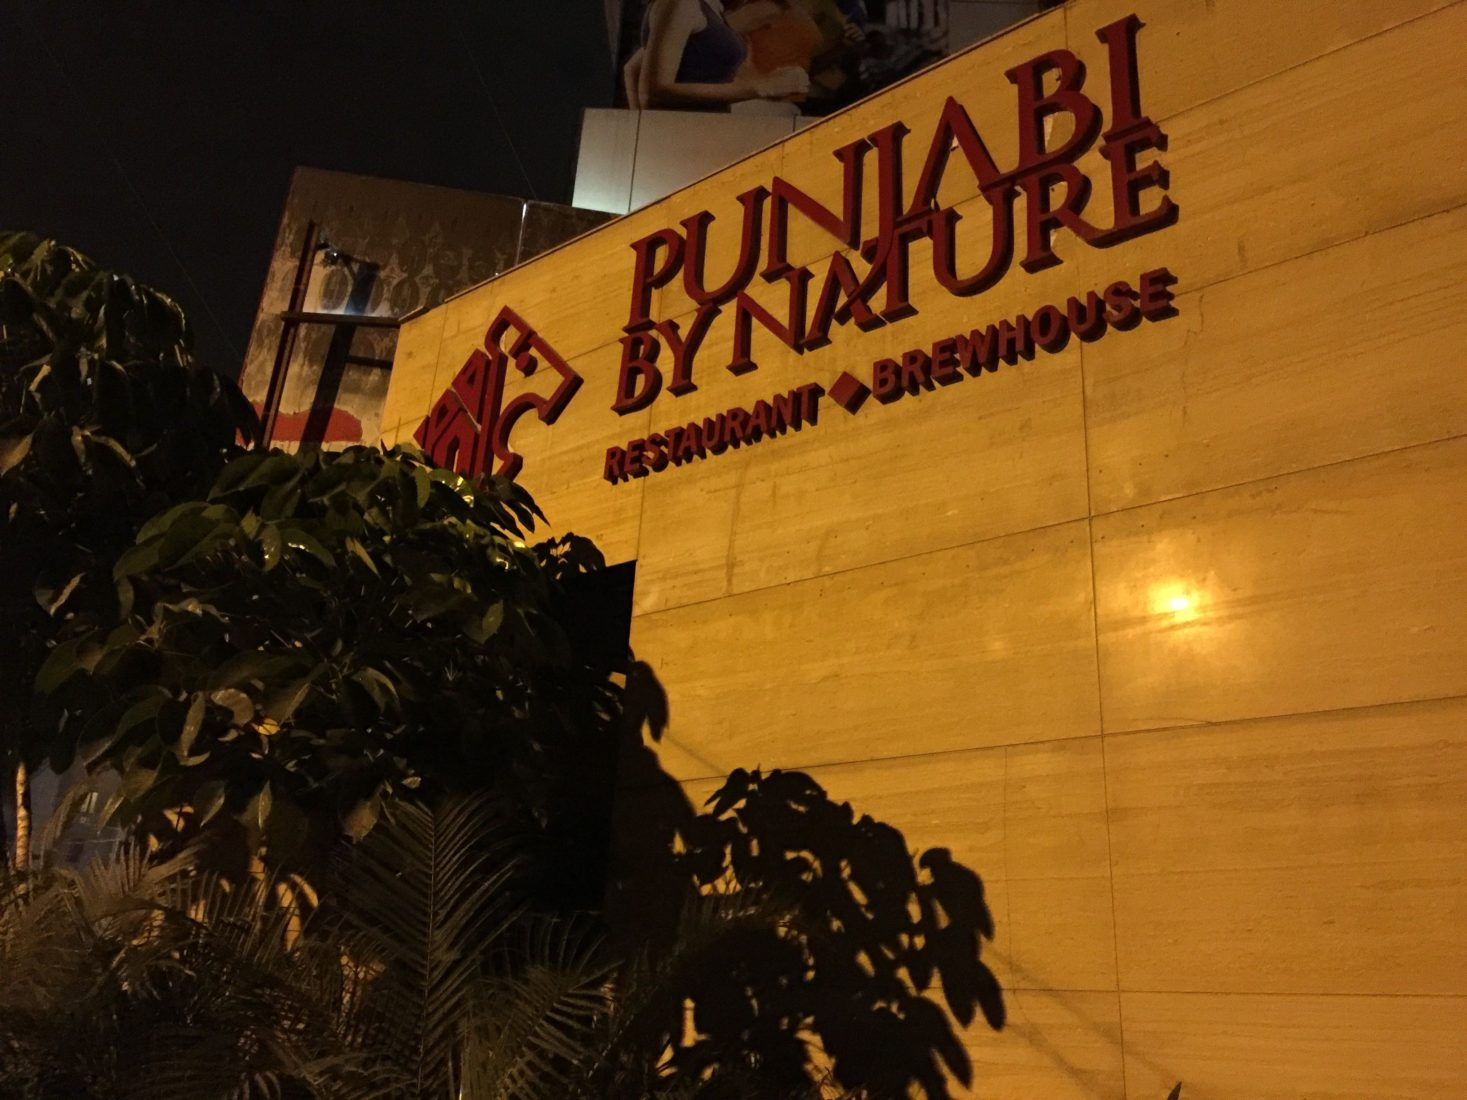 258. Punjabi by Nature, Bangalore India, 2015